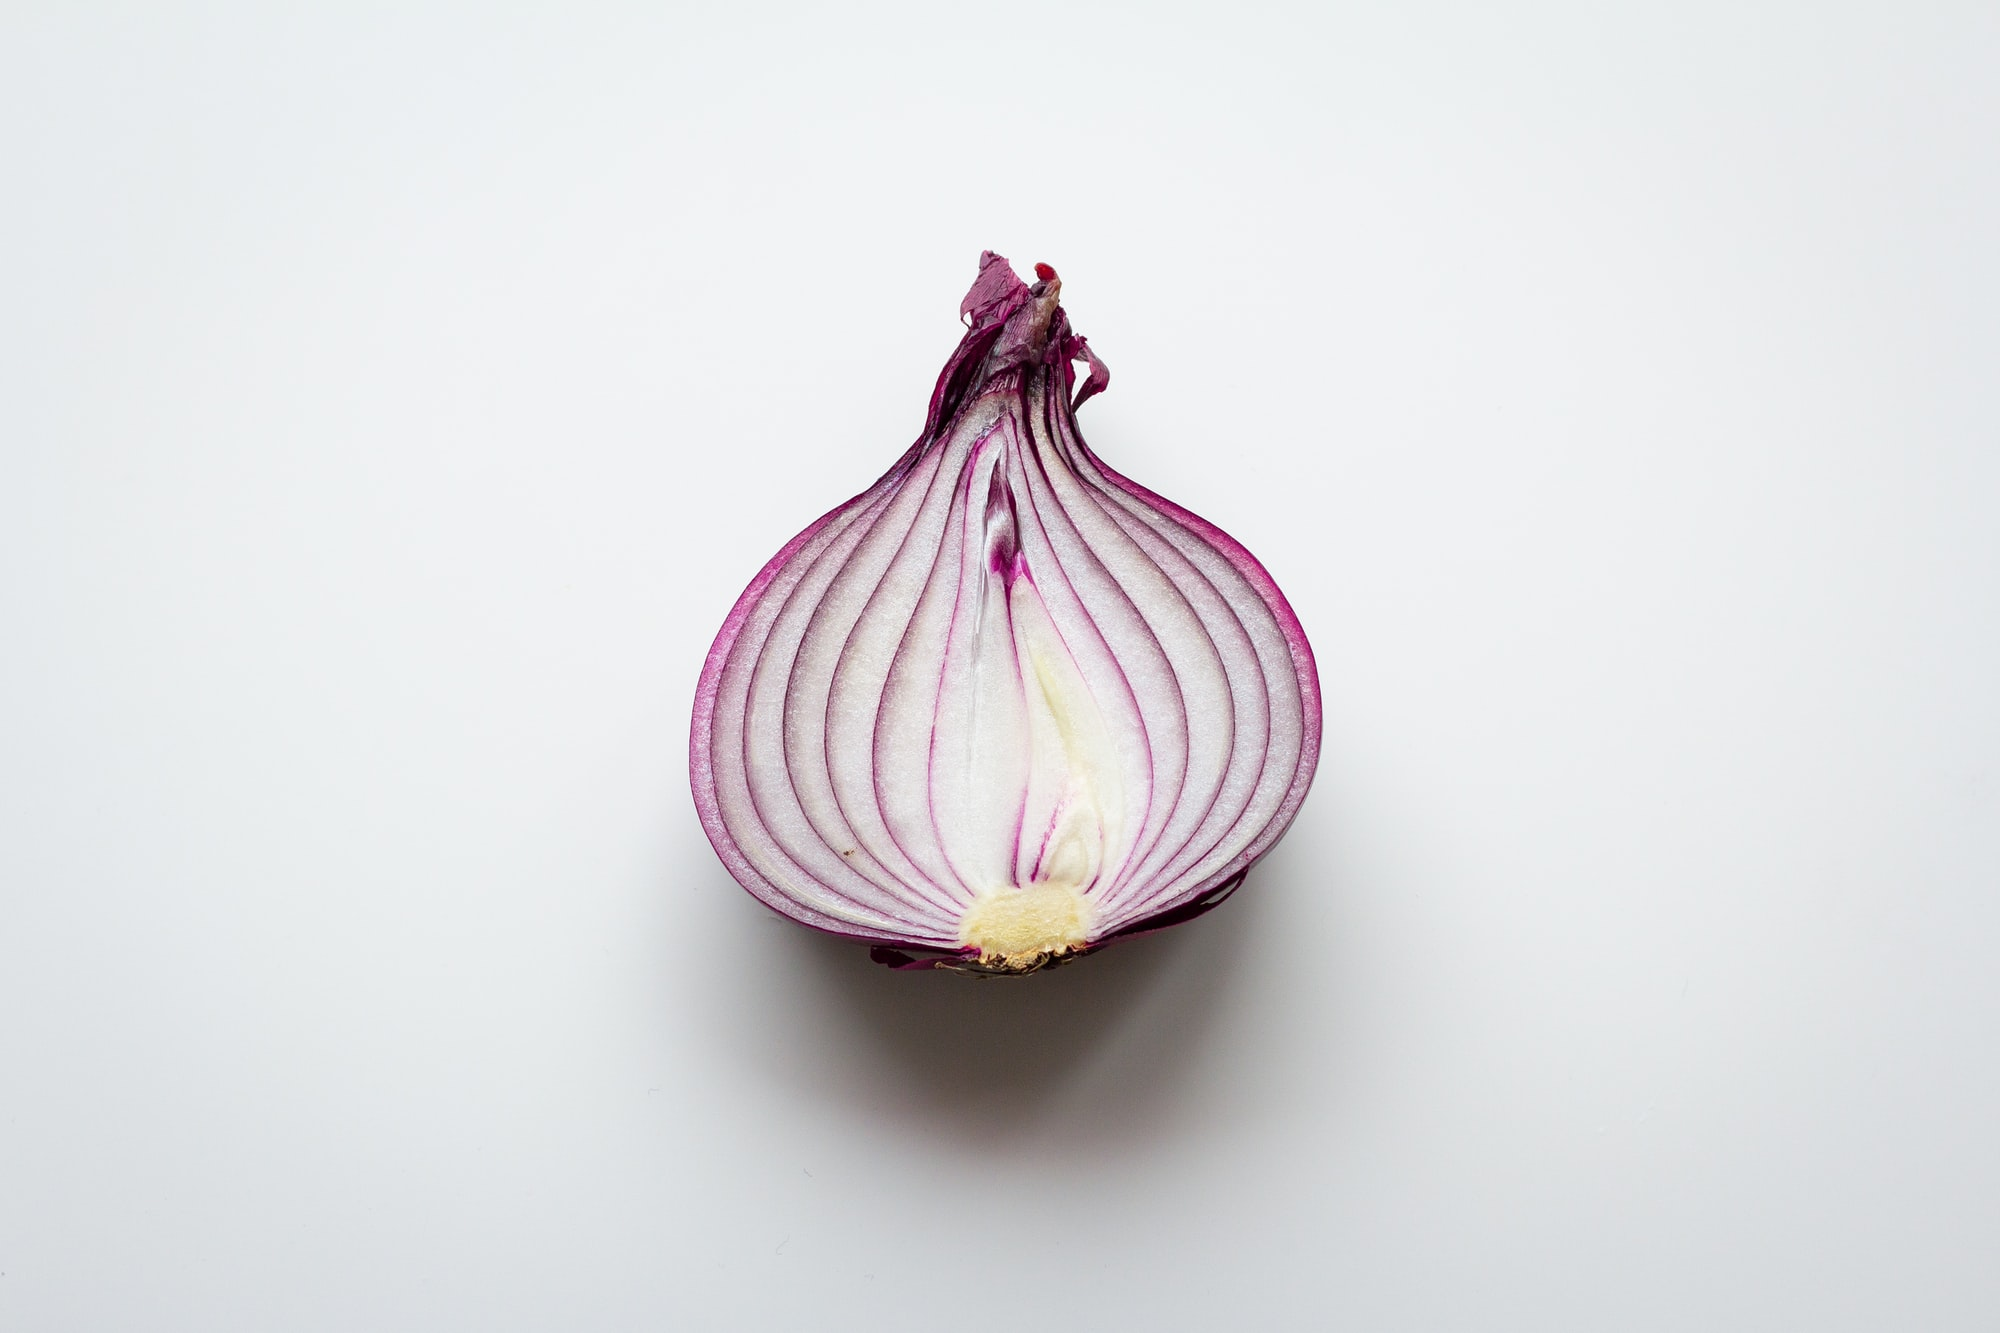 Half of a red onion on a white background